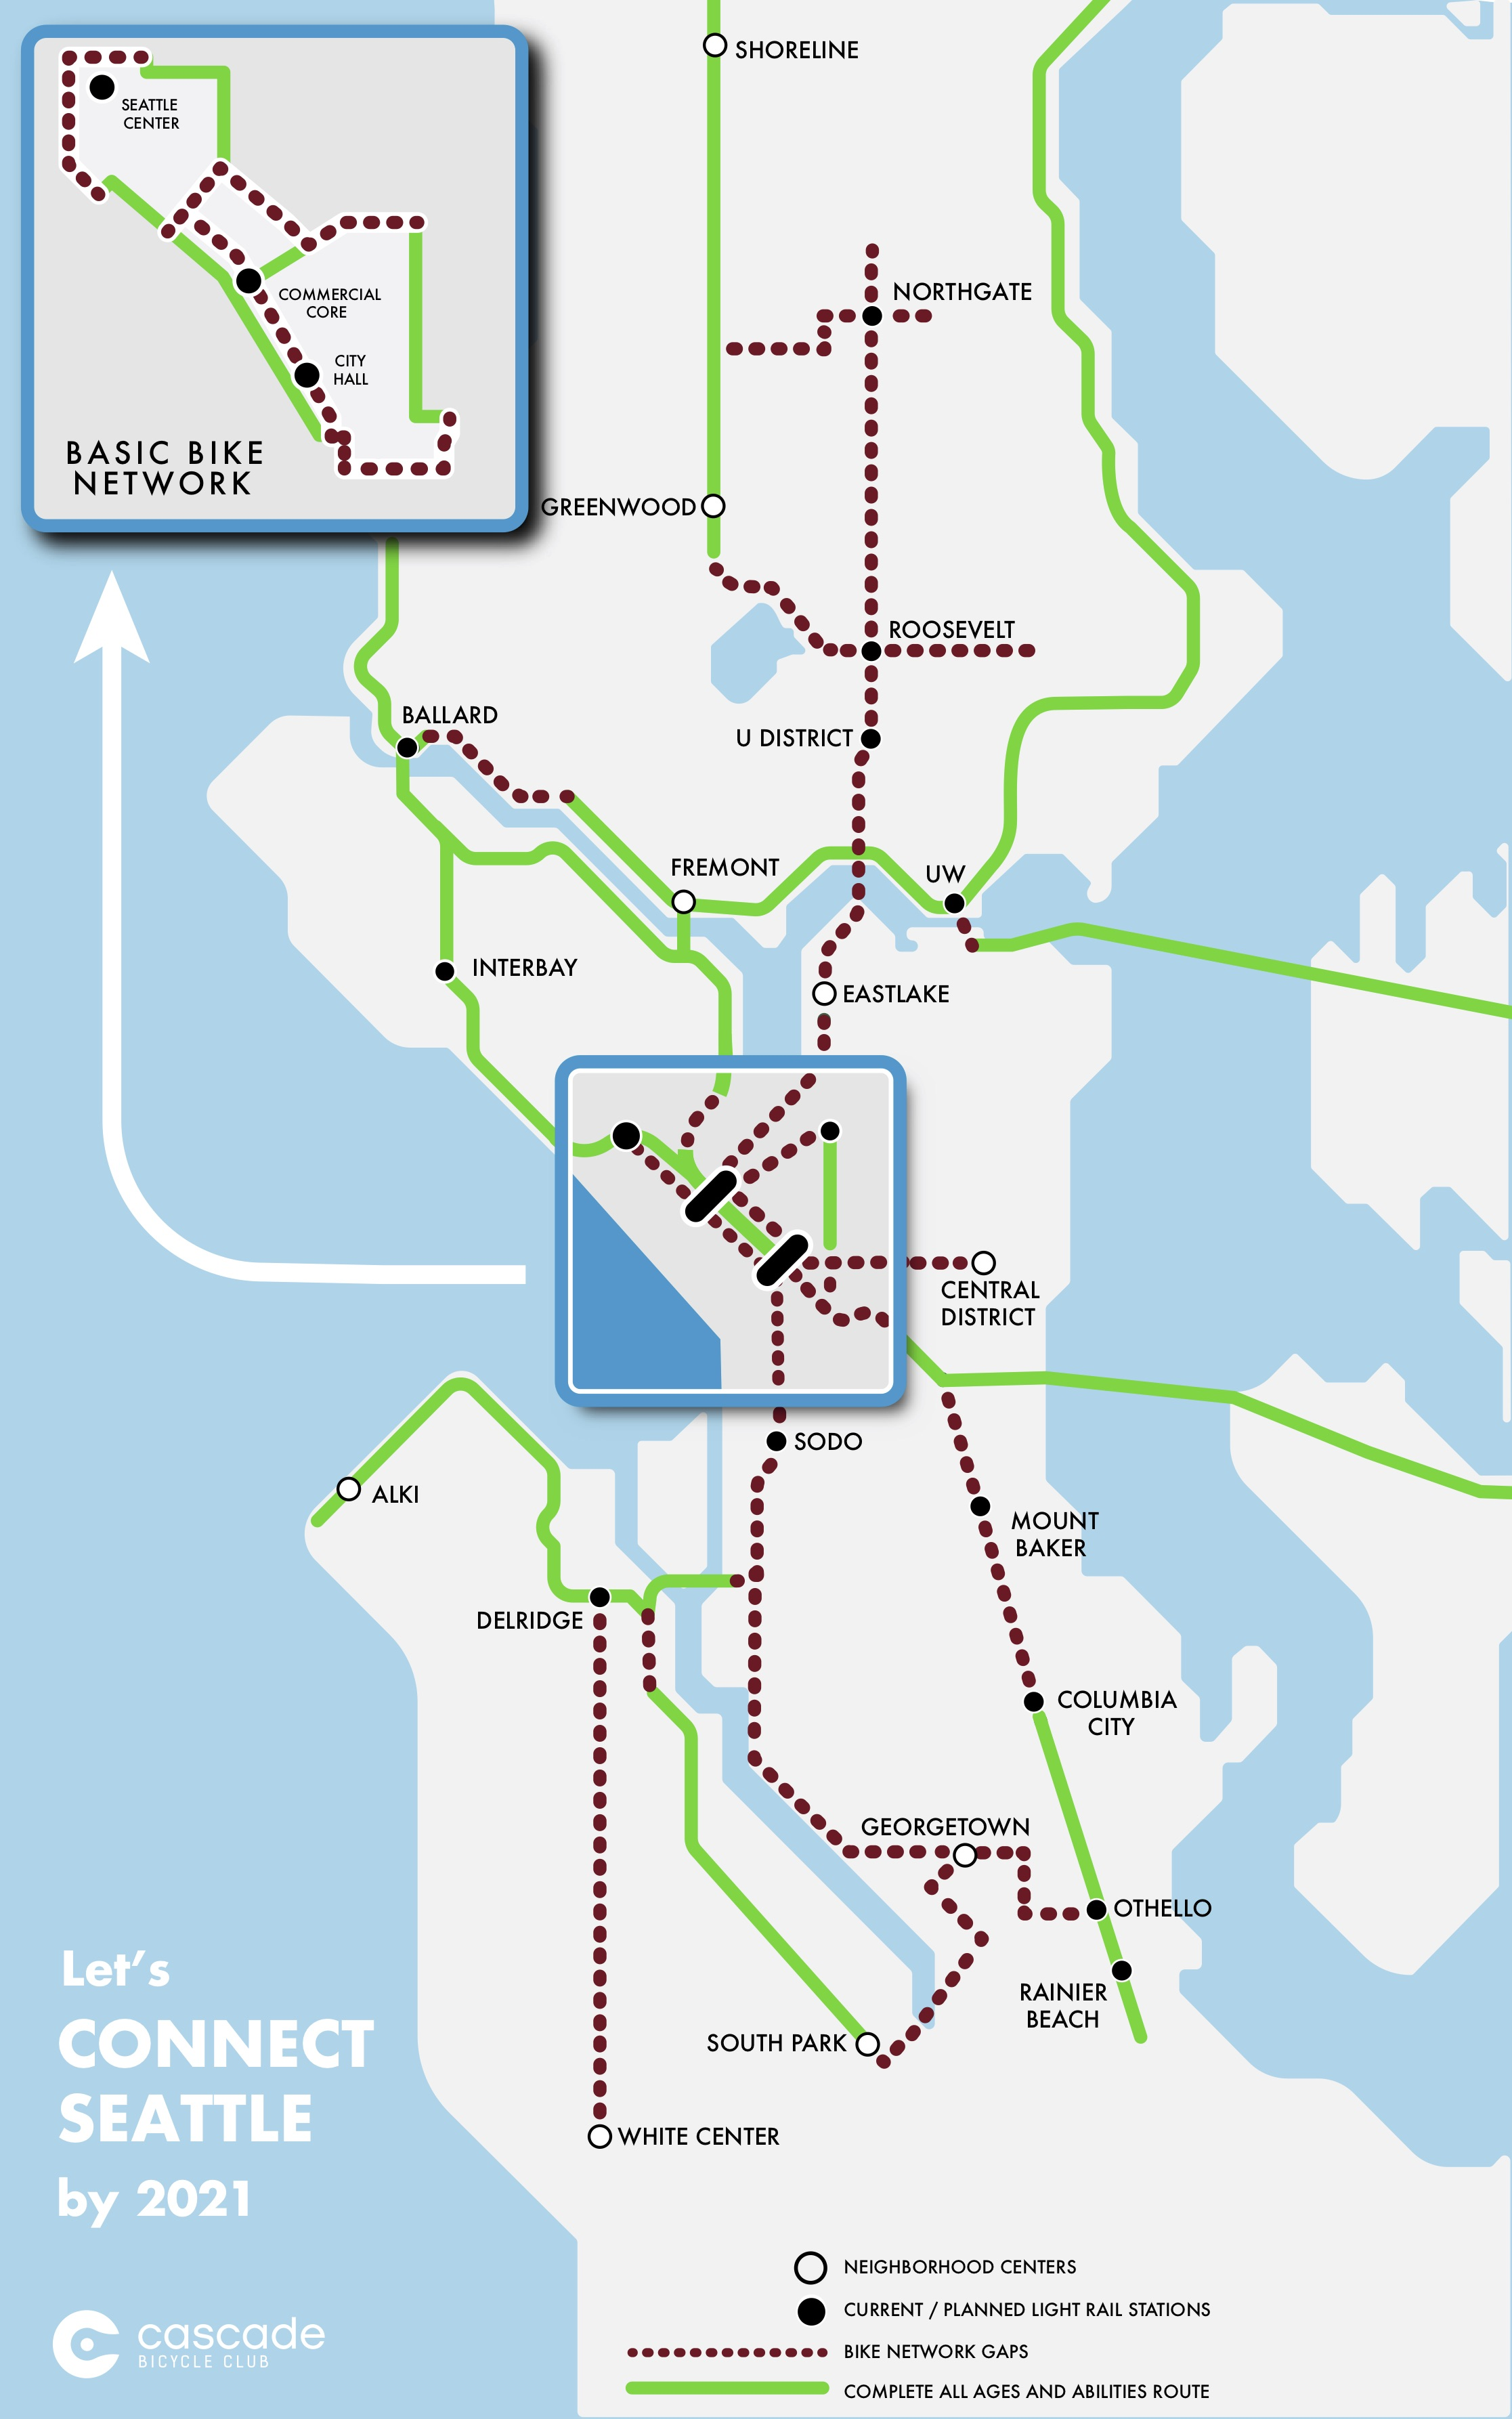 Connect Seattle | Cascade Bicycle Club on seattle school map, seattle annexation map, seattle walking map, seattle city map, seattle bus map, seattle race map, seattle bicycle club maps, seattle biking map, seattle car map, seattle heat map, seattle funny map, seattle greenwood map, seattle park map, seattle zoning map, seattle mountain biking, seattle rail map, seattle driving map, university district seattle map, seattle parking map, seattle hiking map,